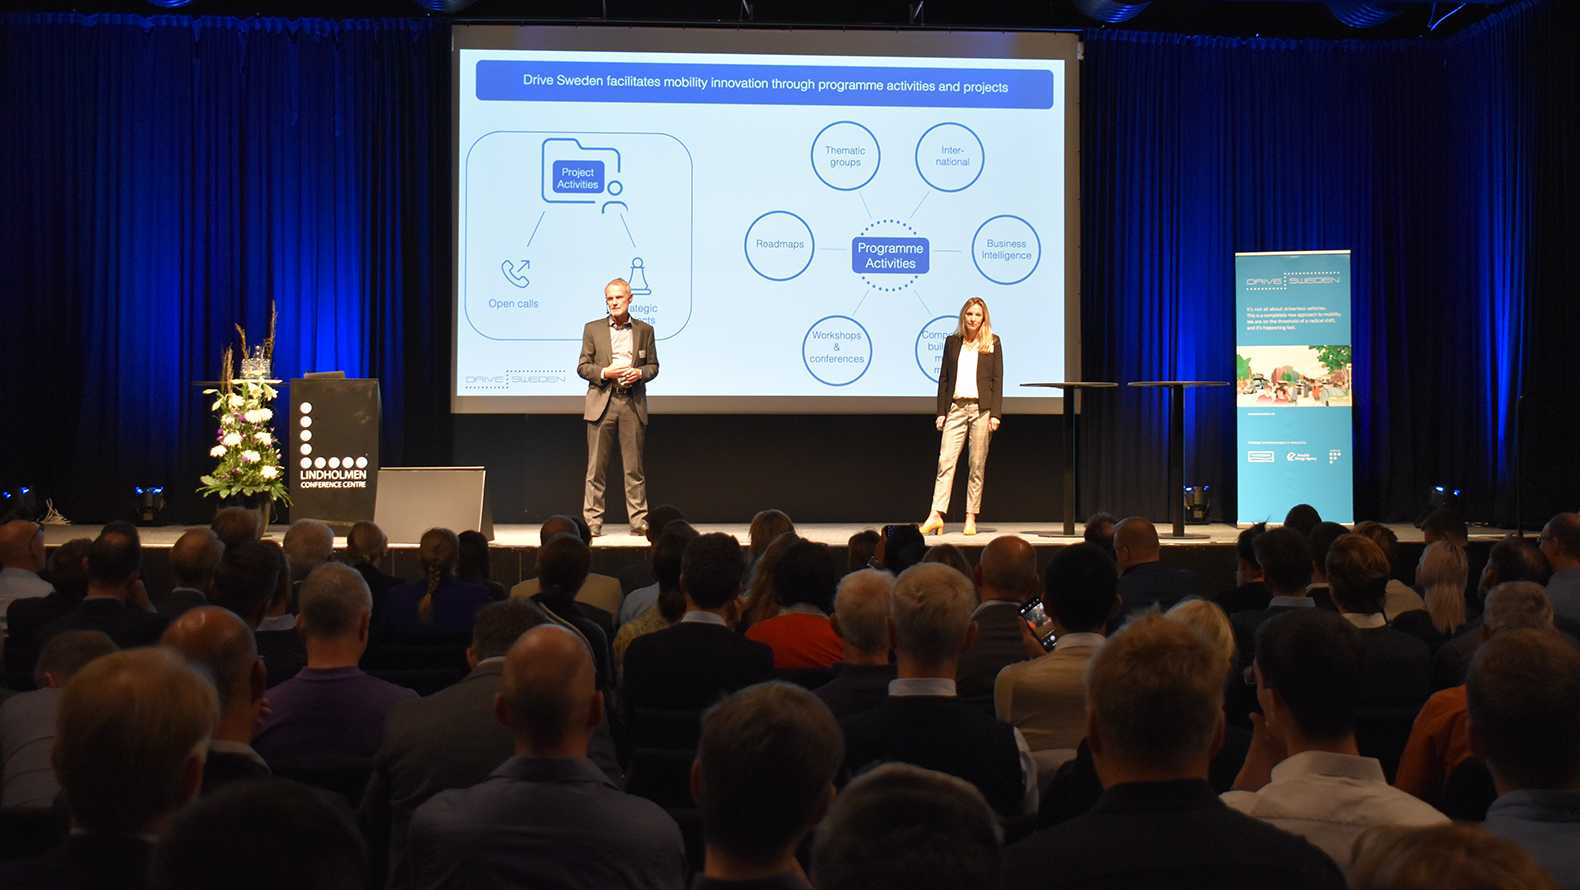 Chairman Jan Hellåker and director Sofie Vennersten on stage at Drive Sweden Forum on September 12th 2019.